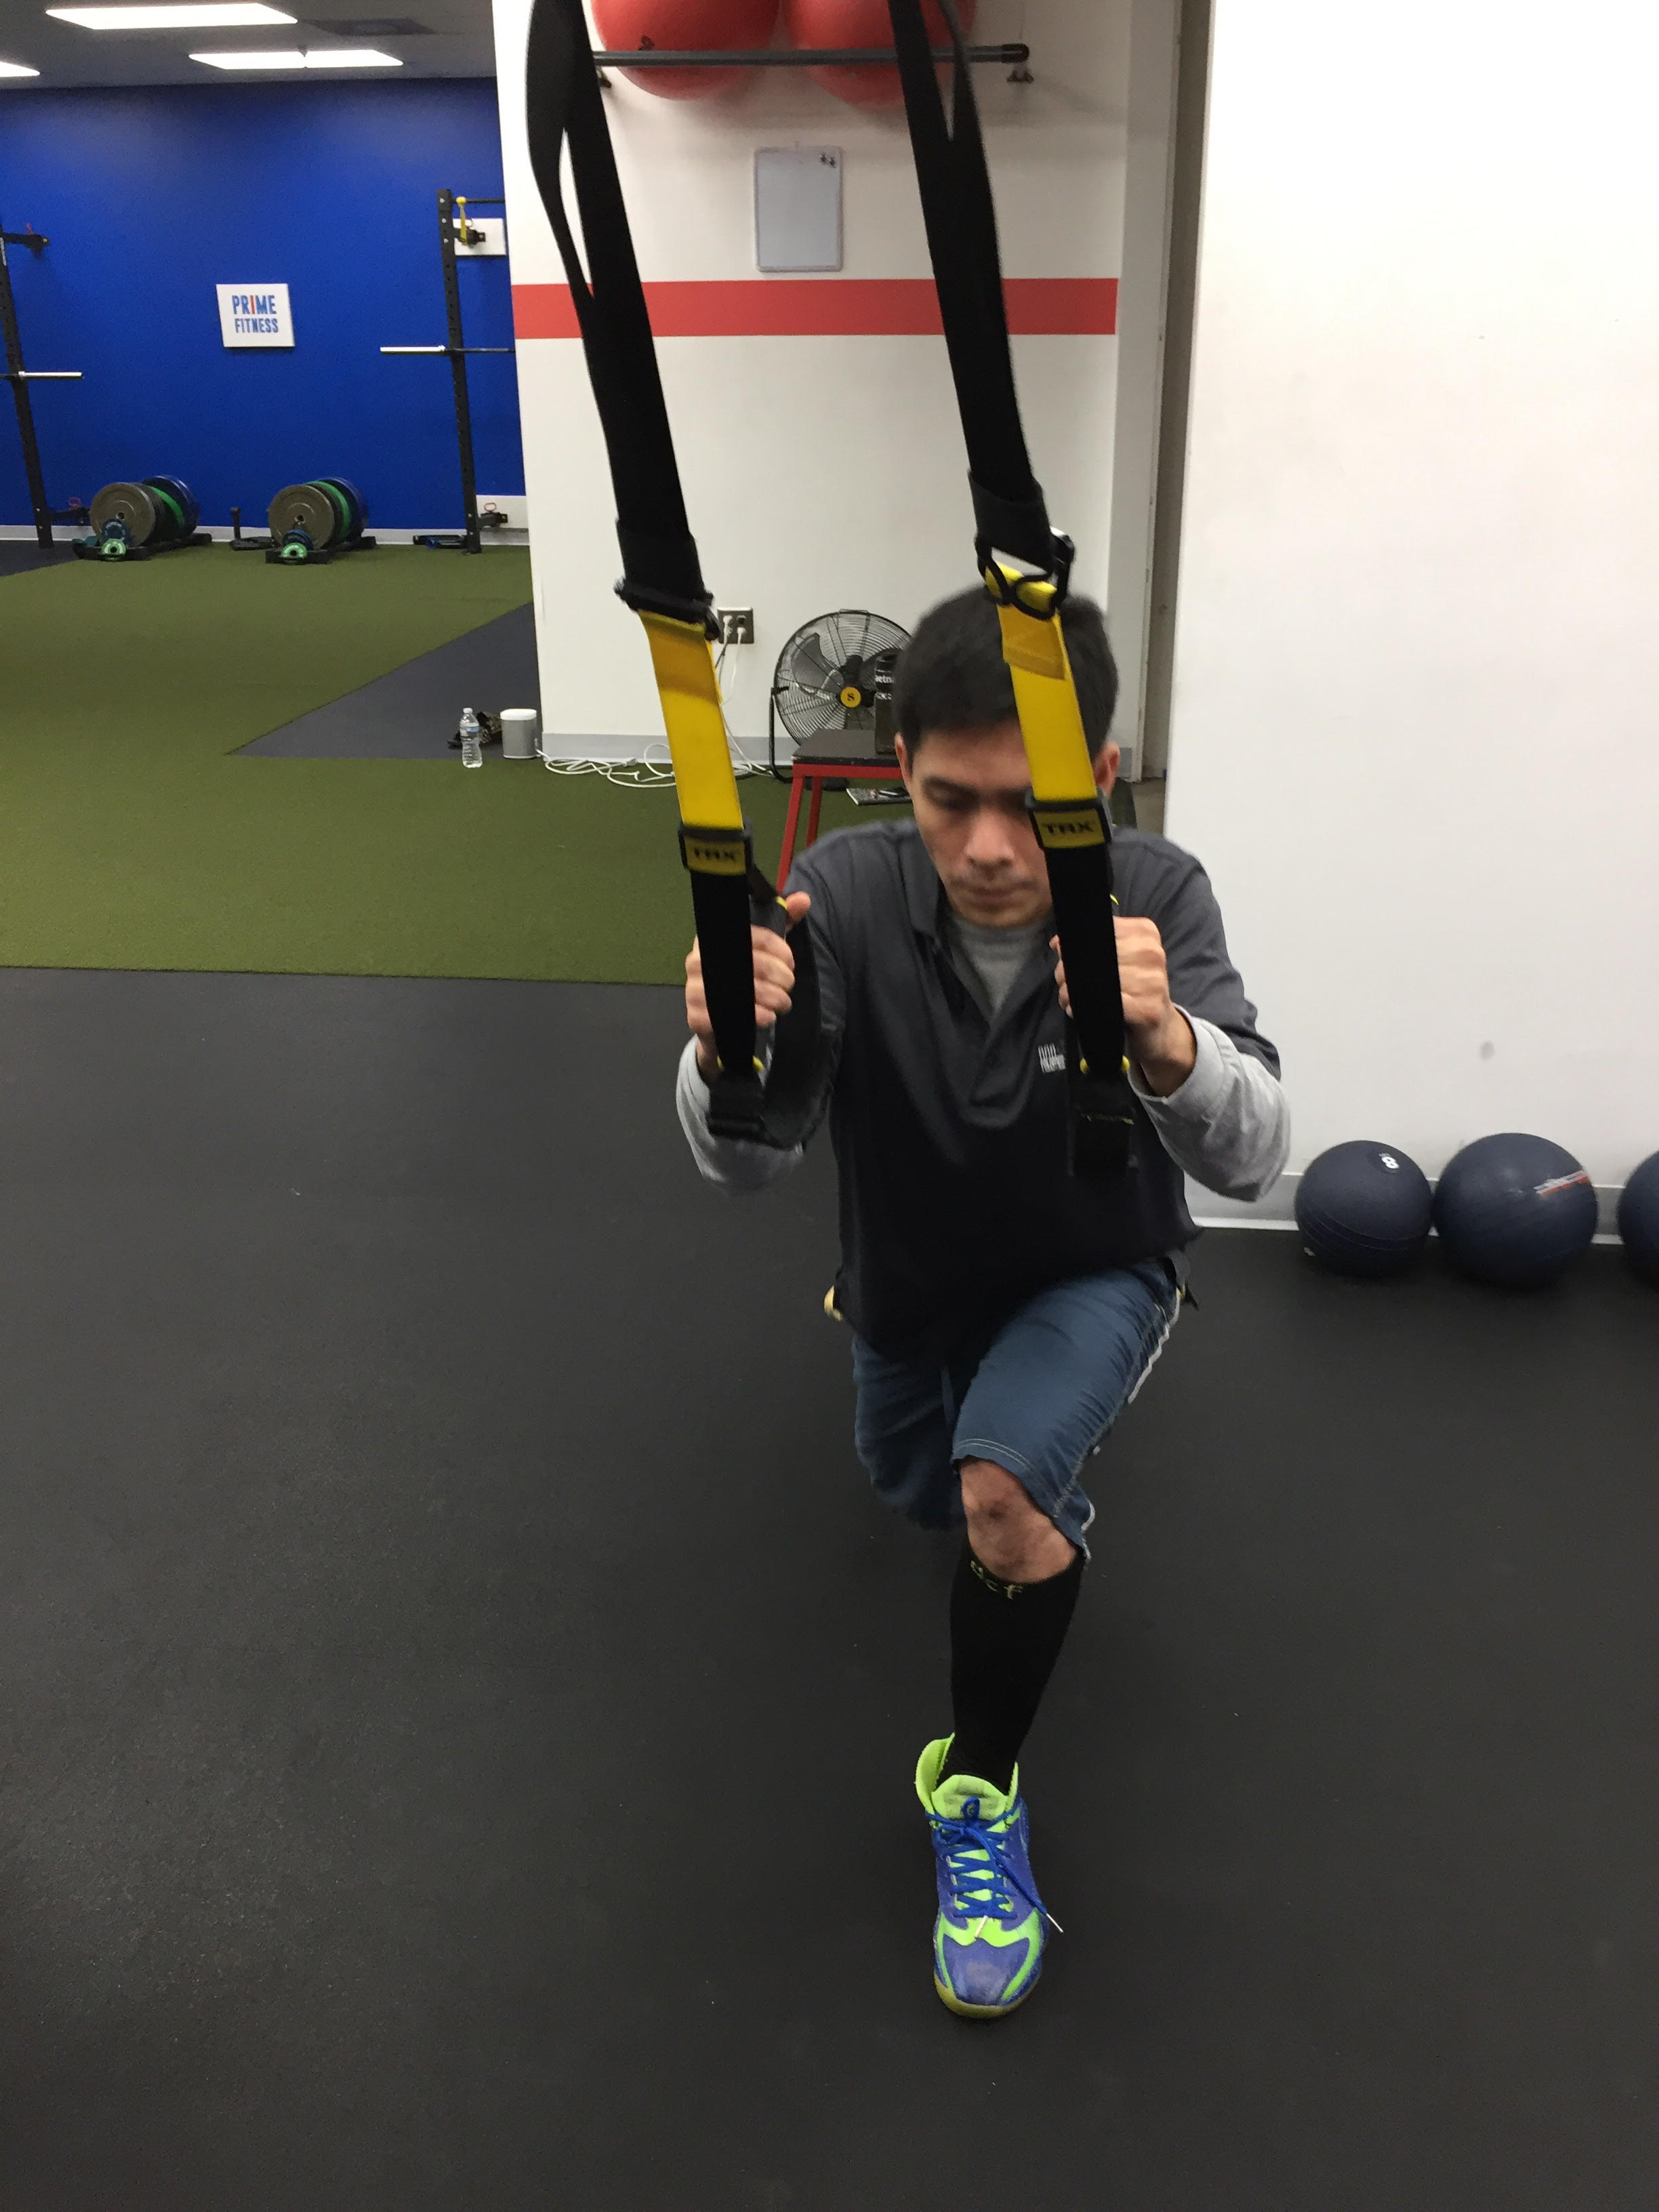 Lunge and Pull personal training functional movement Columbia Howard County MD.jpg